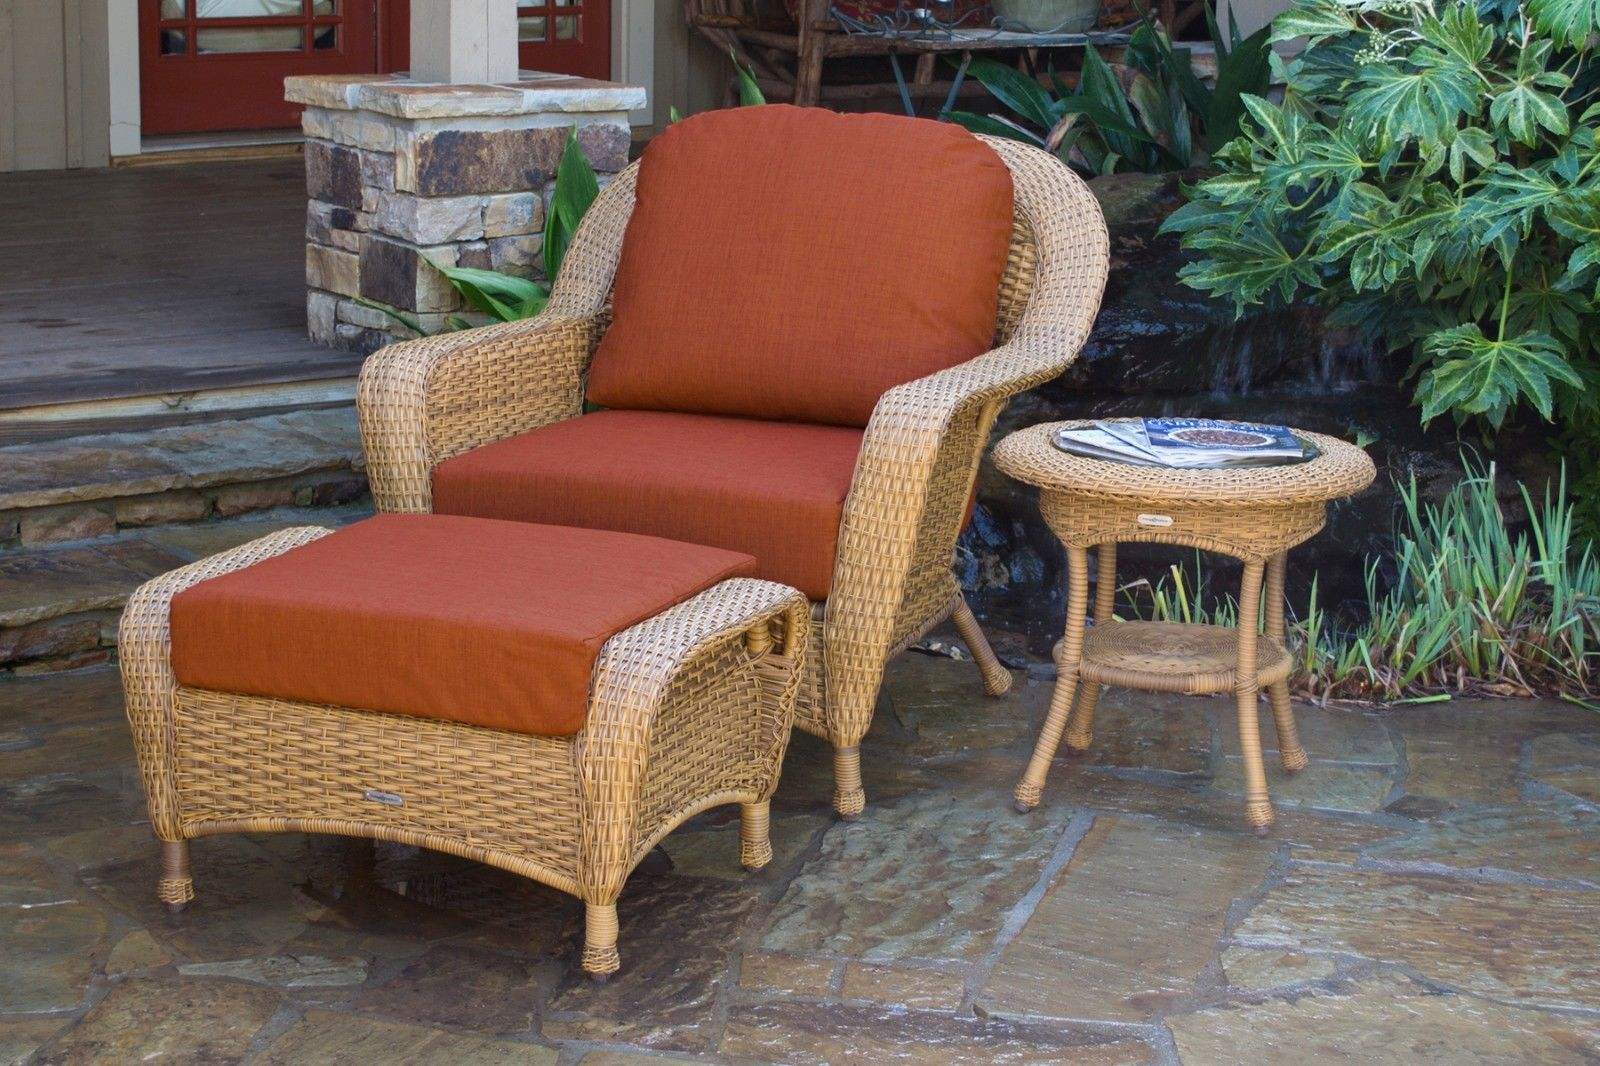 #97 - Outdoor Patio Furniture Mojave Resin Wicker Club Chair Ottoman & End Table in Rave Brick